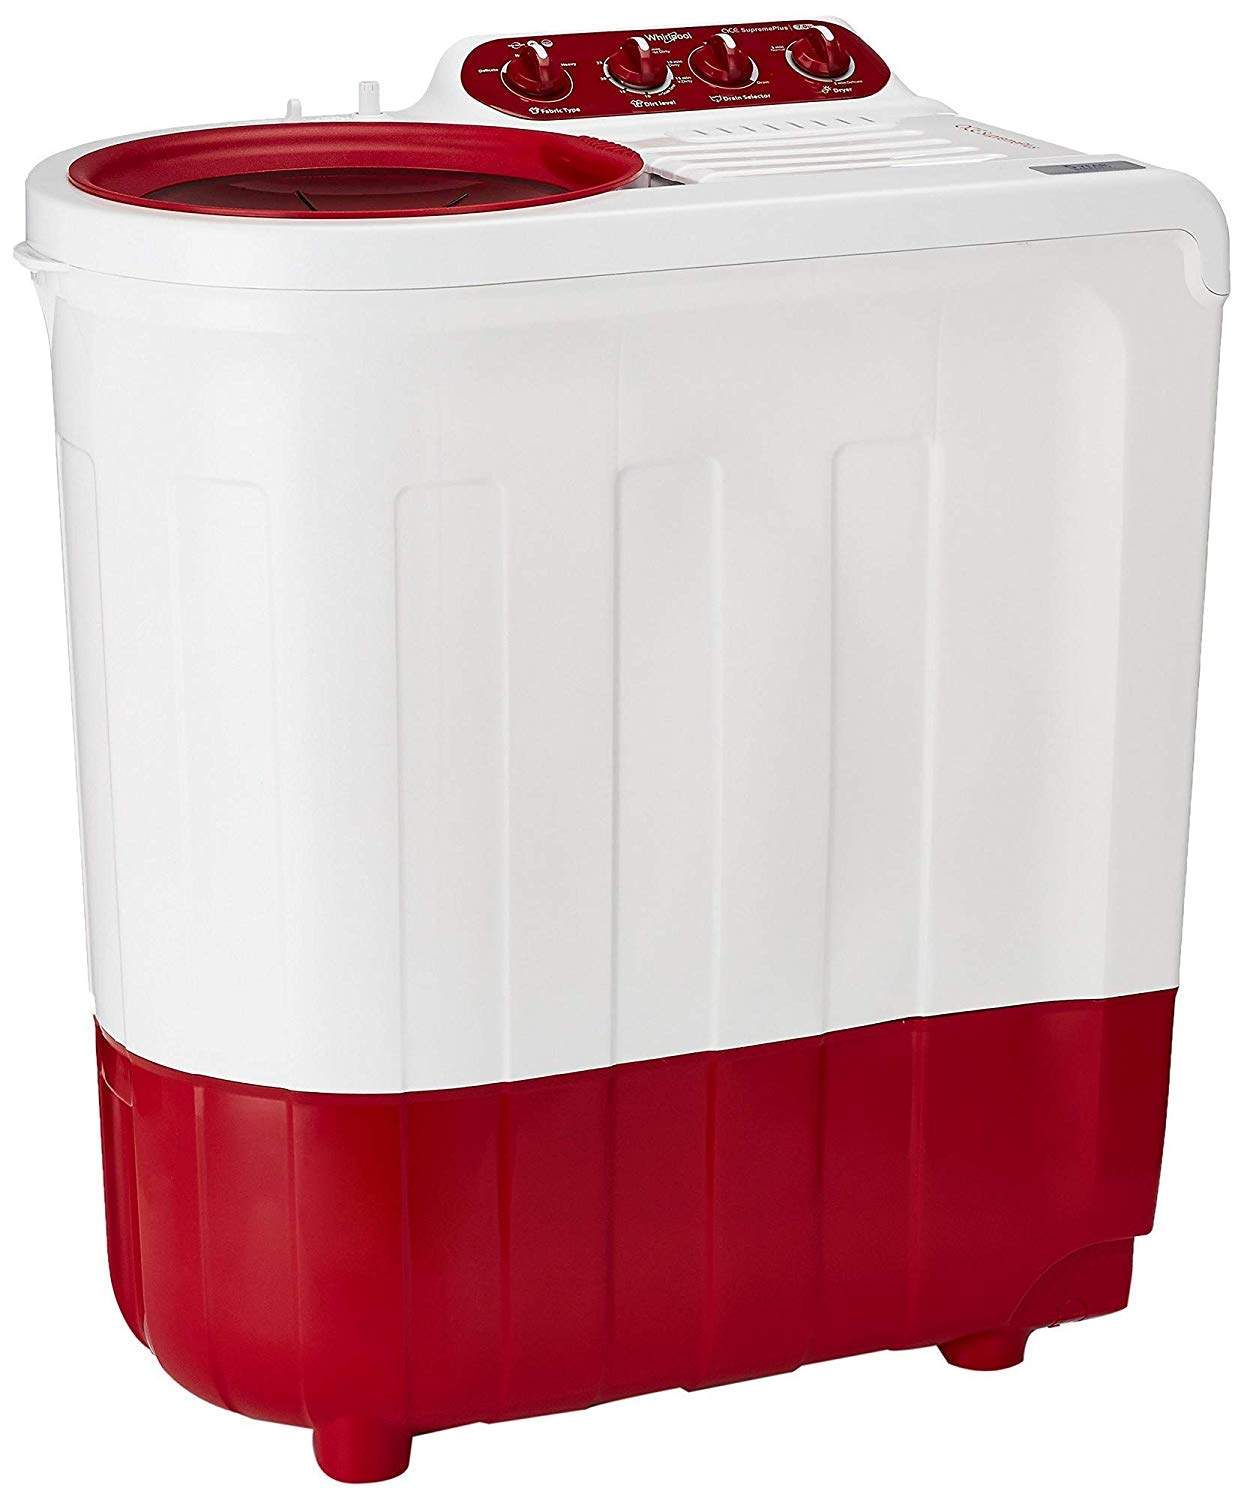 Whirlpool 7.2 Kg Semi-Automatic Top Loading Washing Machine (Ace Supreme Plus, Coral Red)